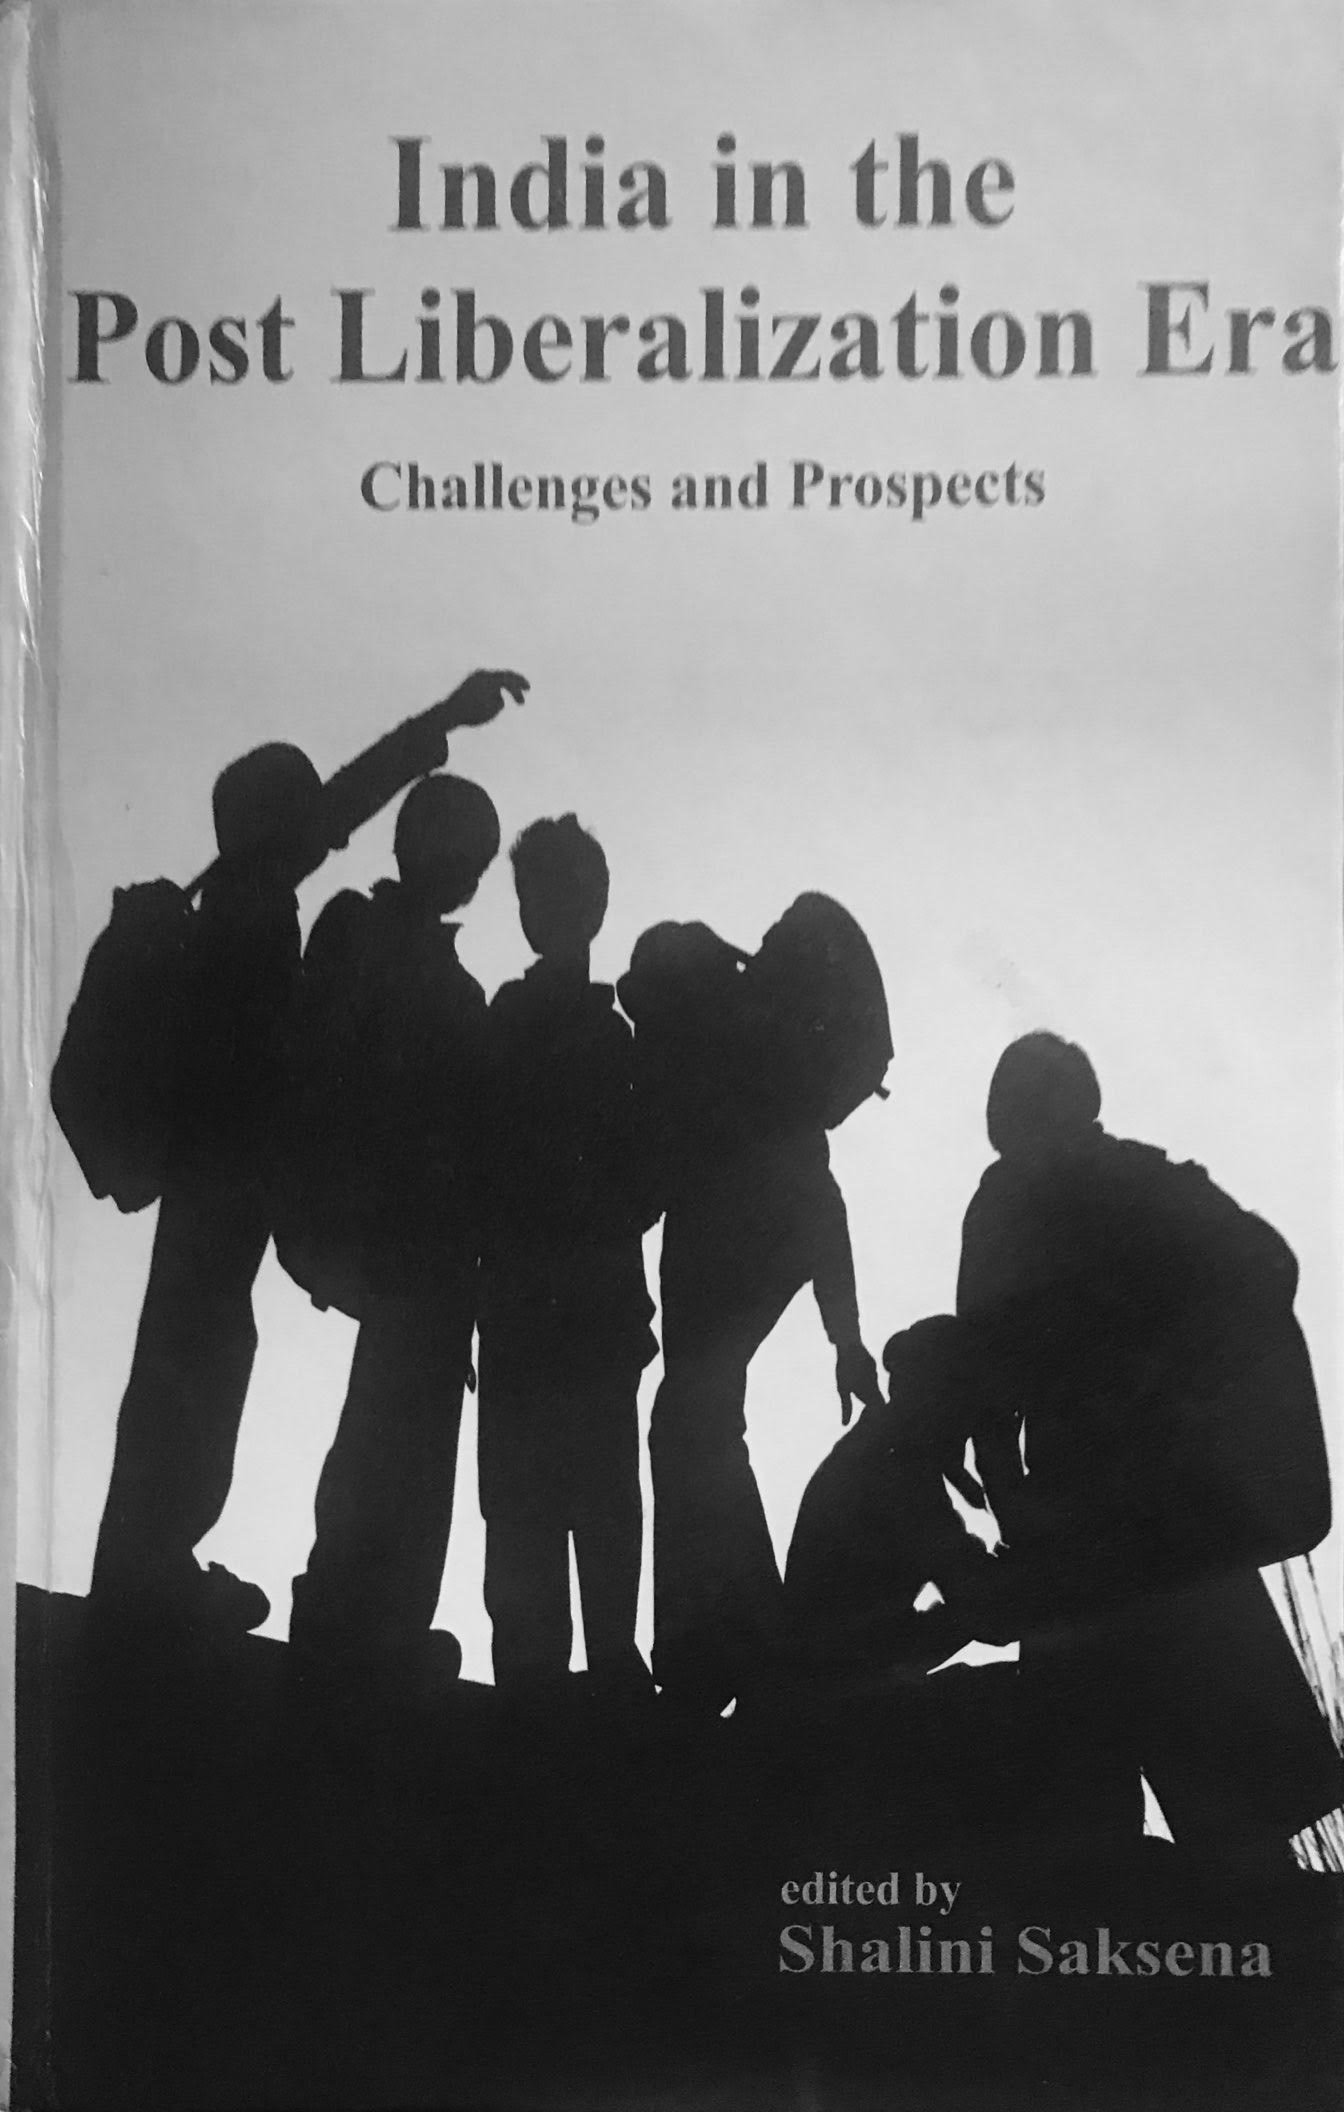 India in the Post Liberalization Era : Challenges and Prospects (HB) ebook